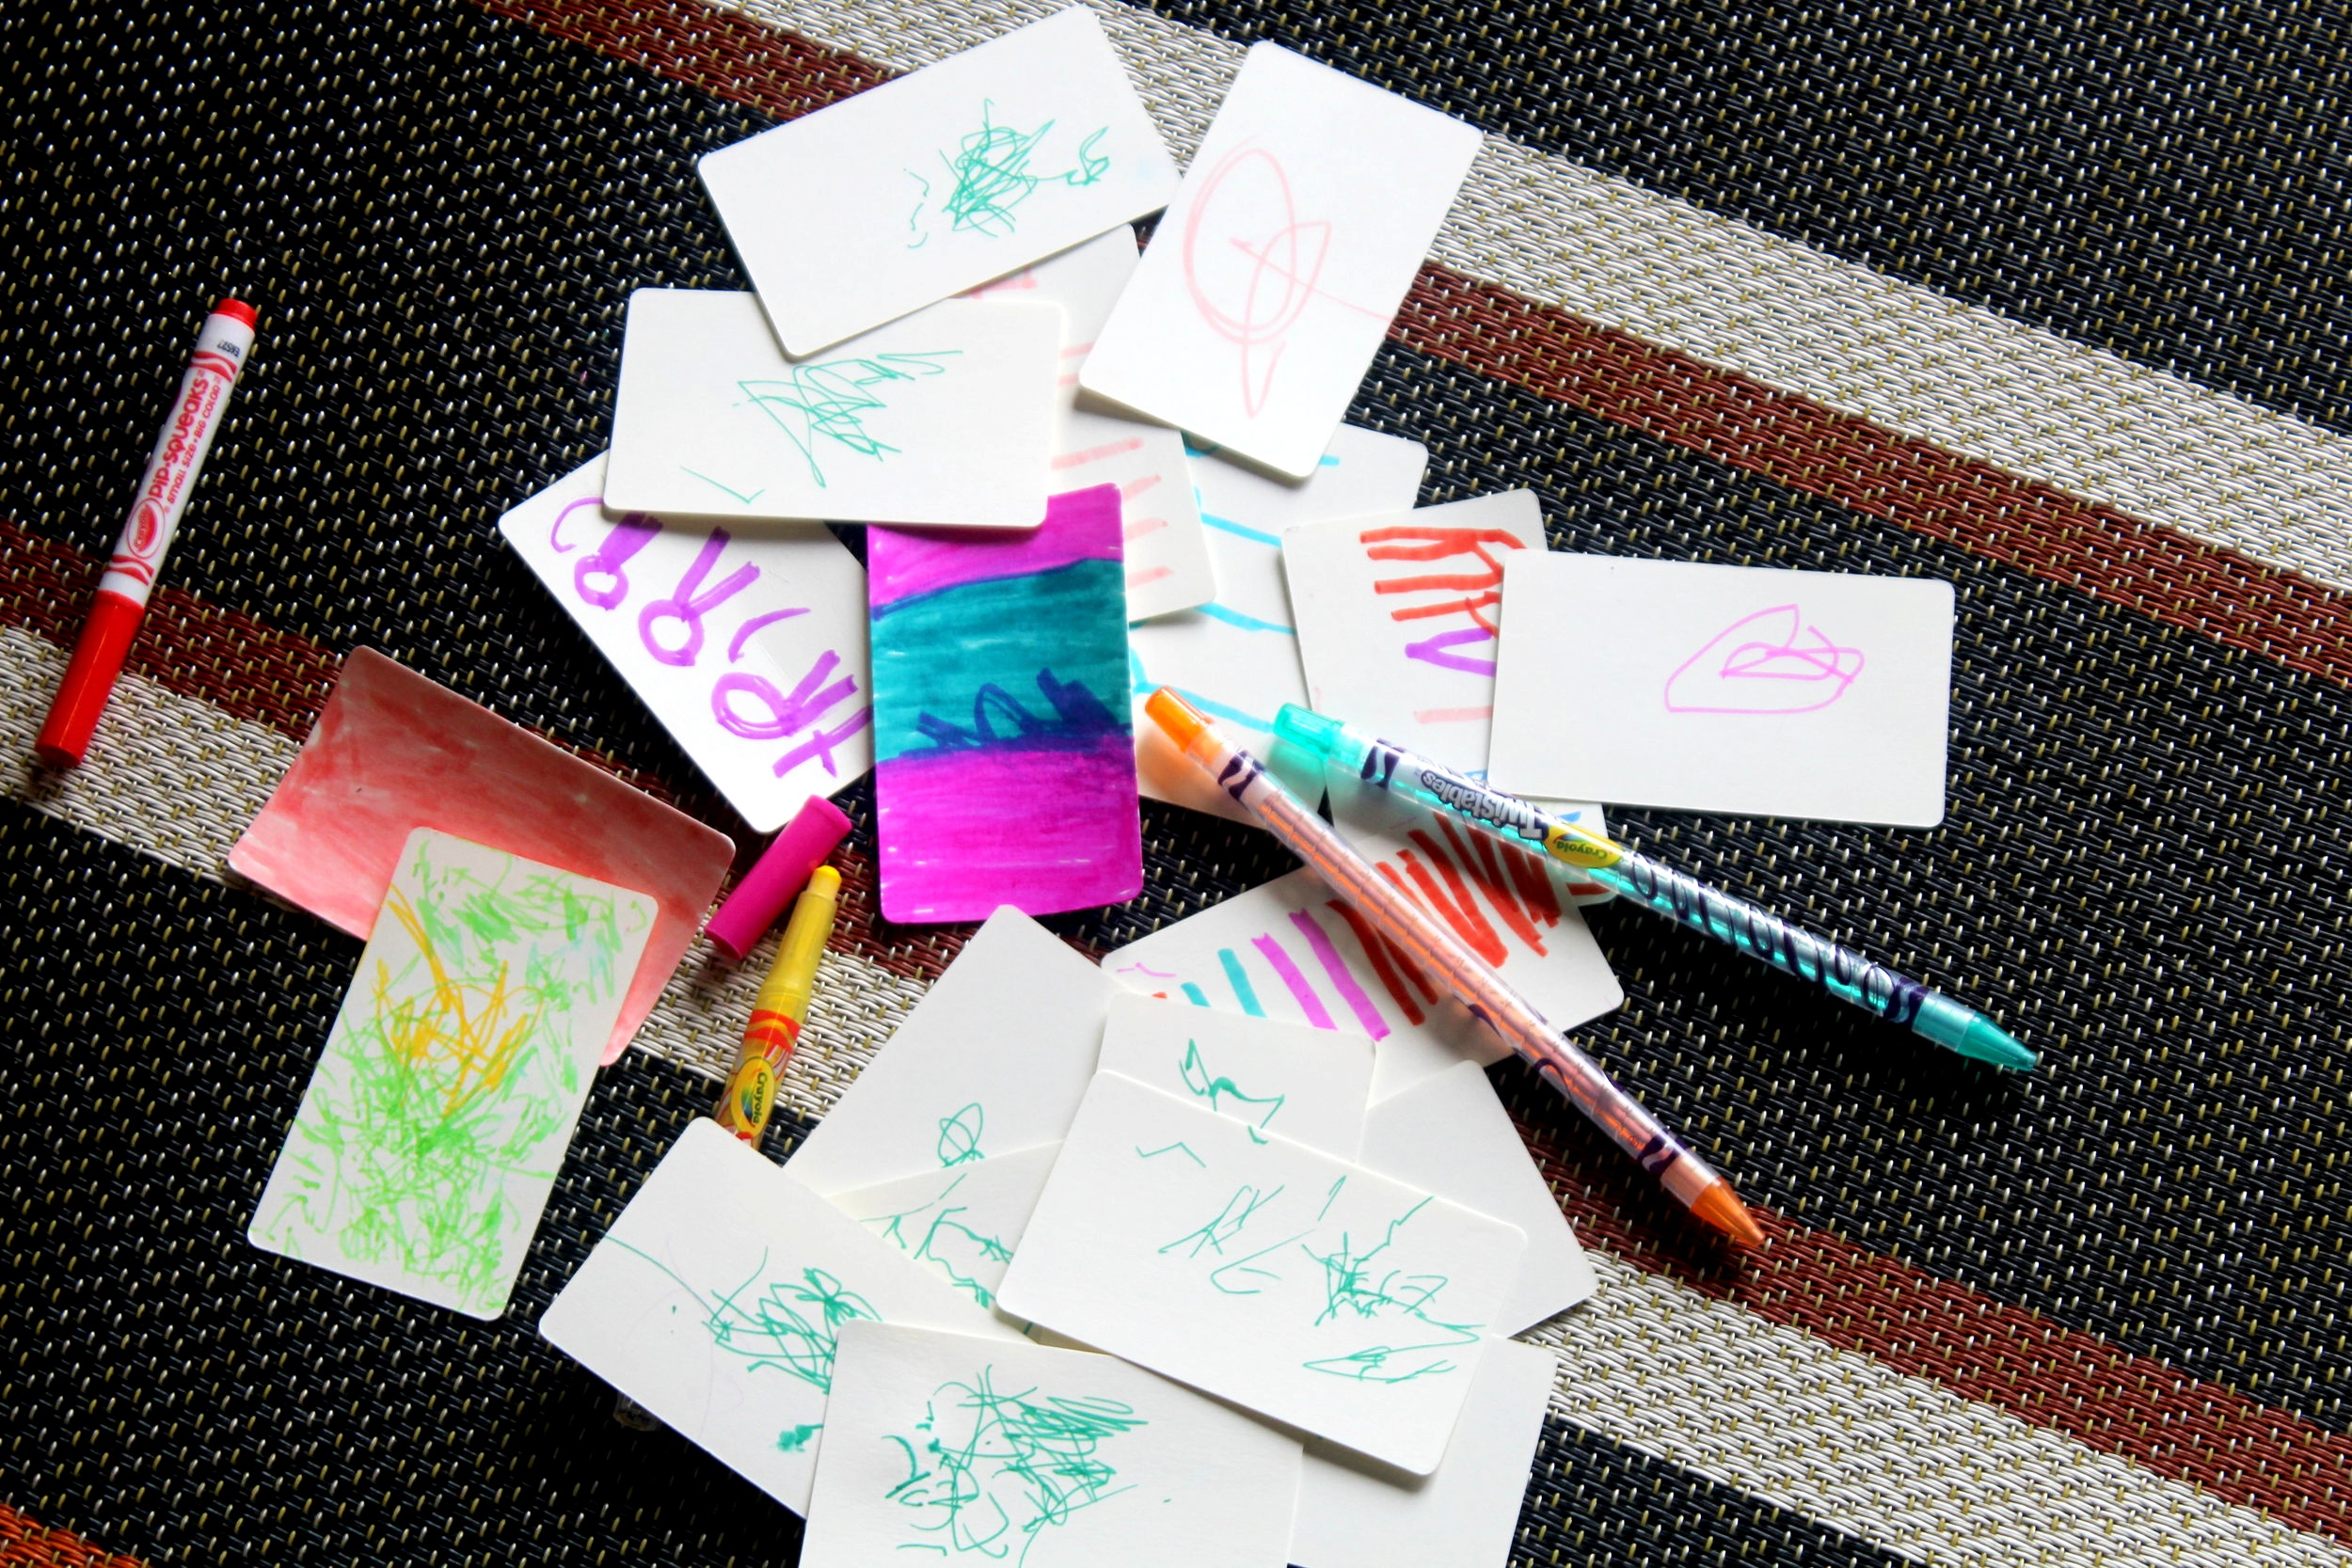 Swirl-Crayons-notes.JPG